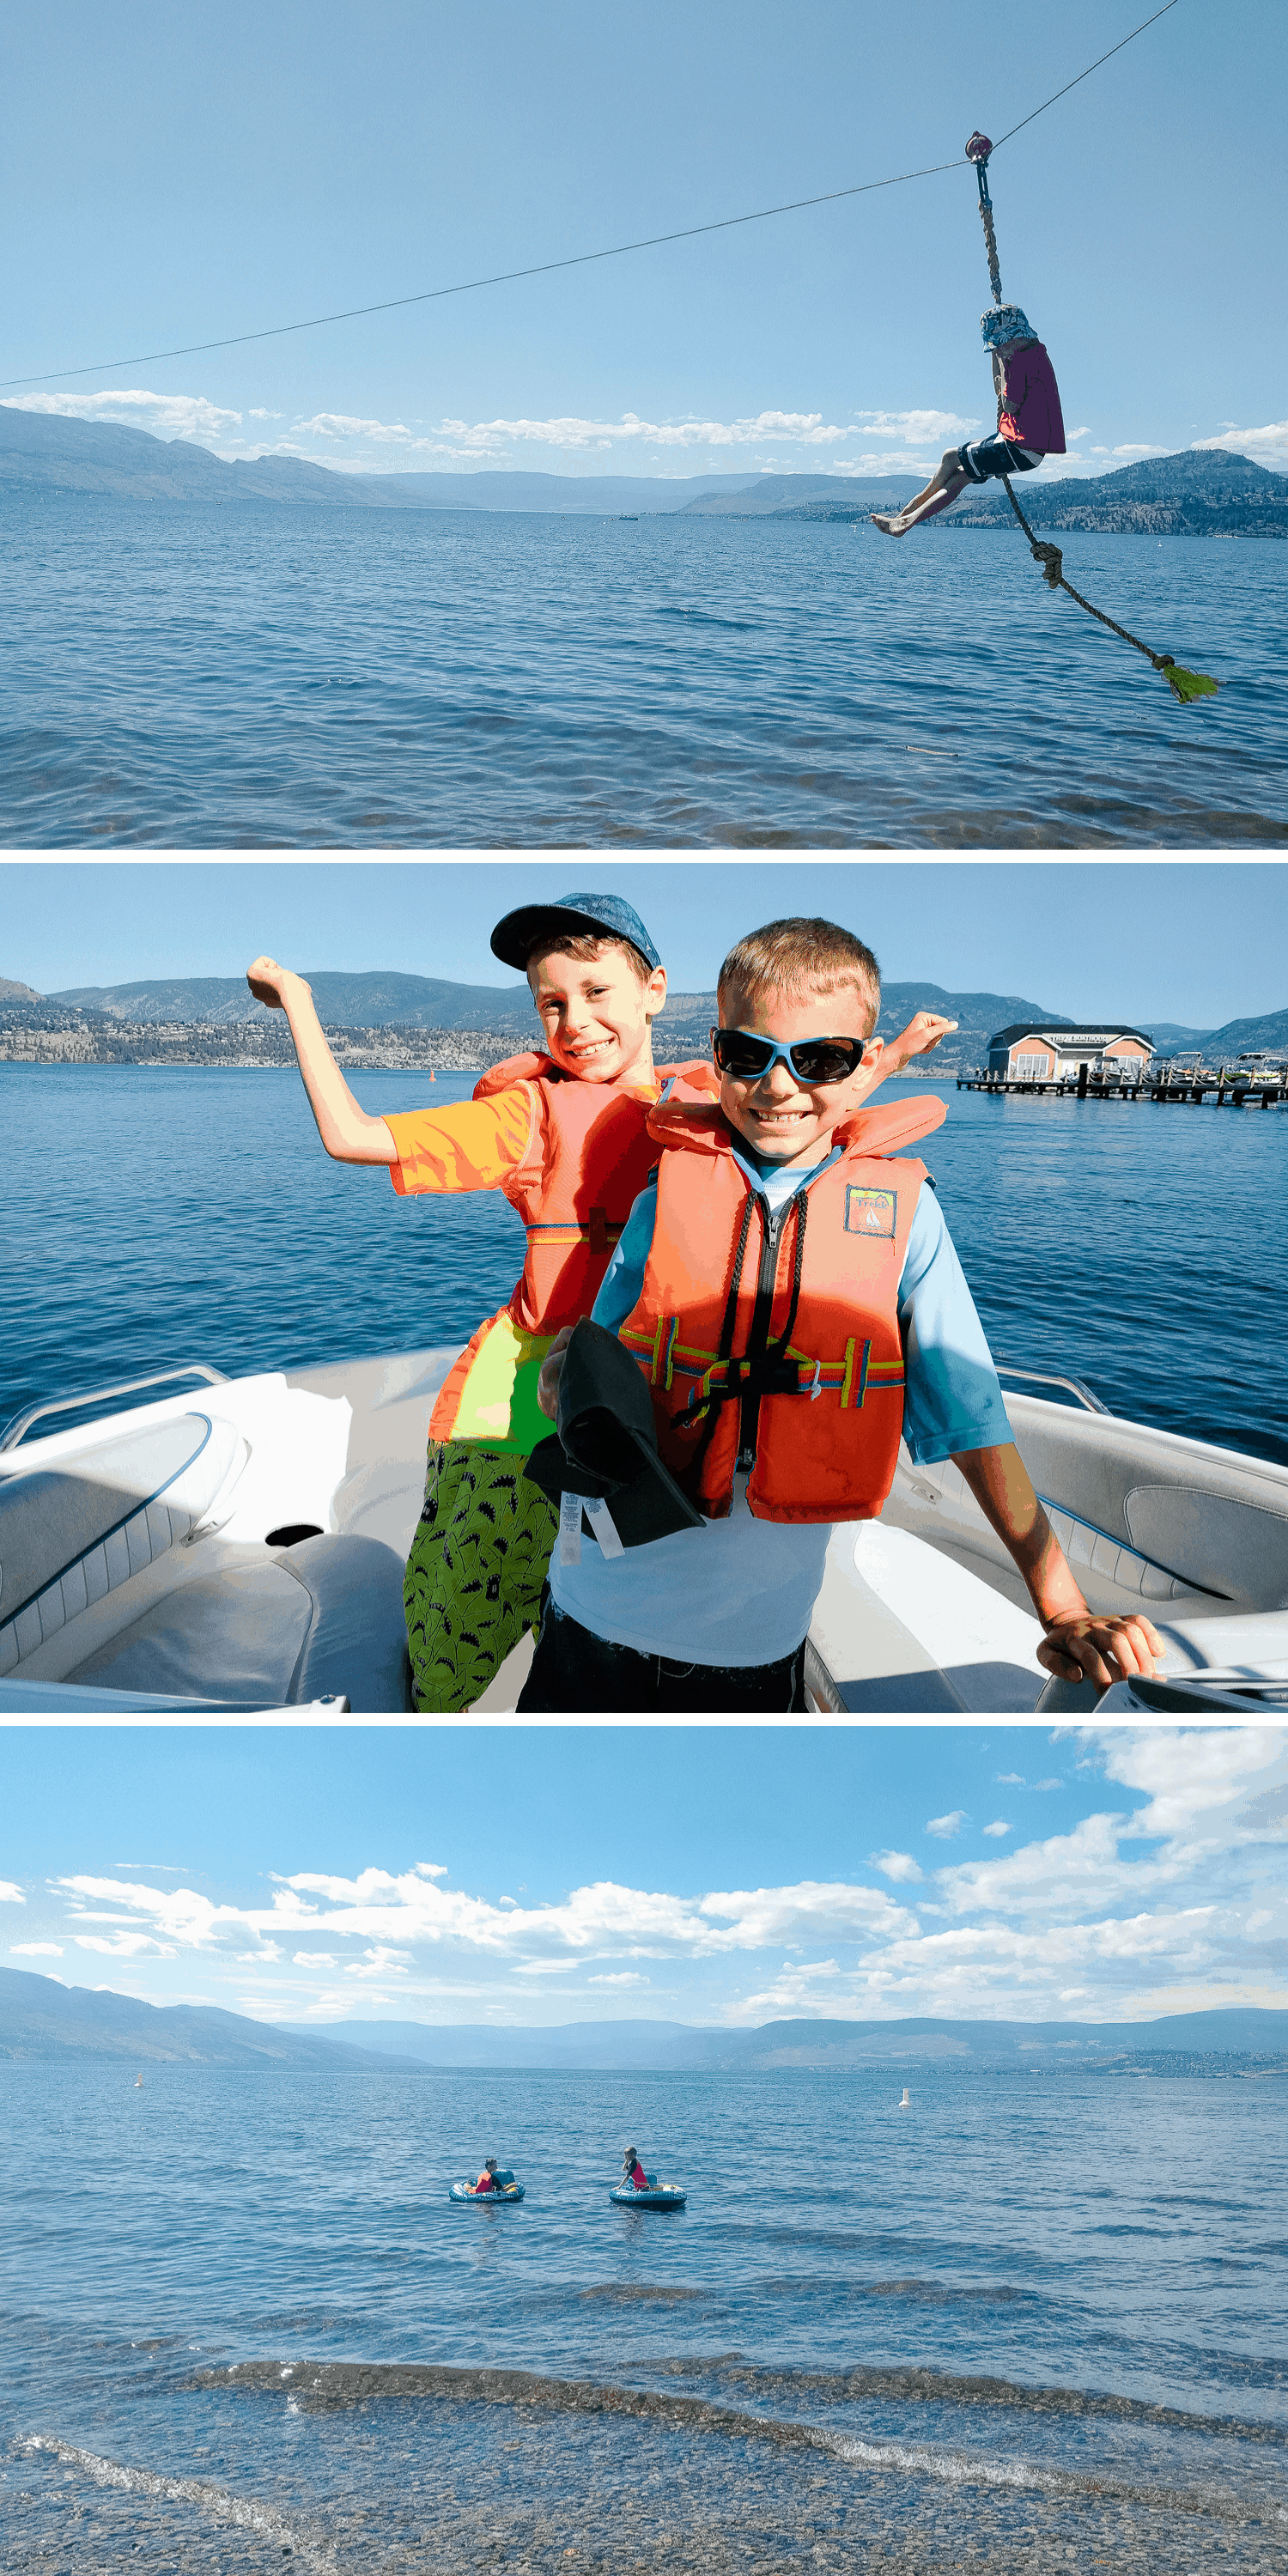 Three photos of fun on Okanagan Lake in Kelowna.